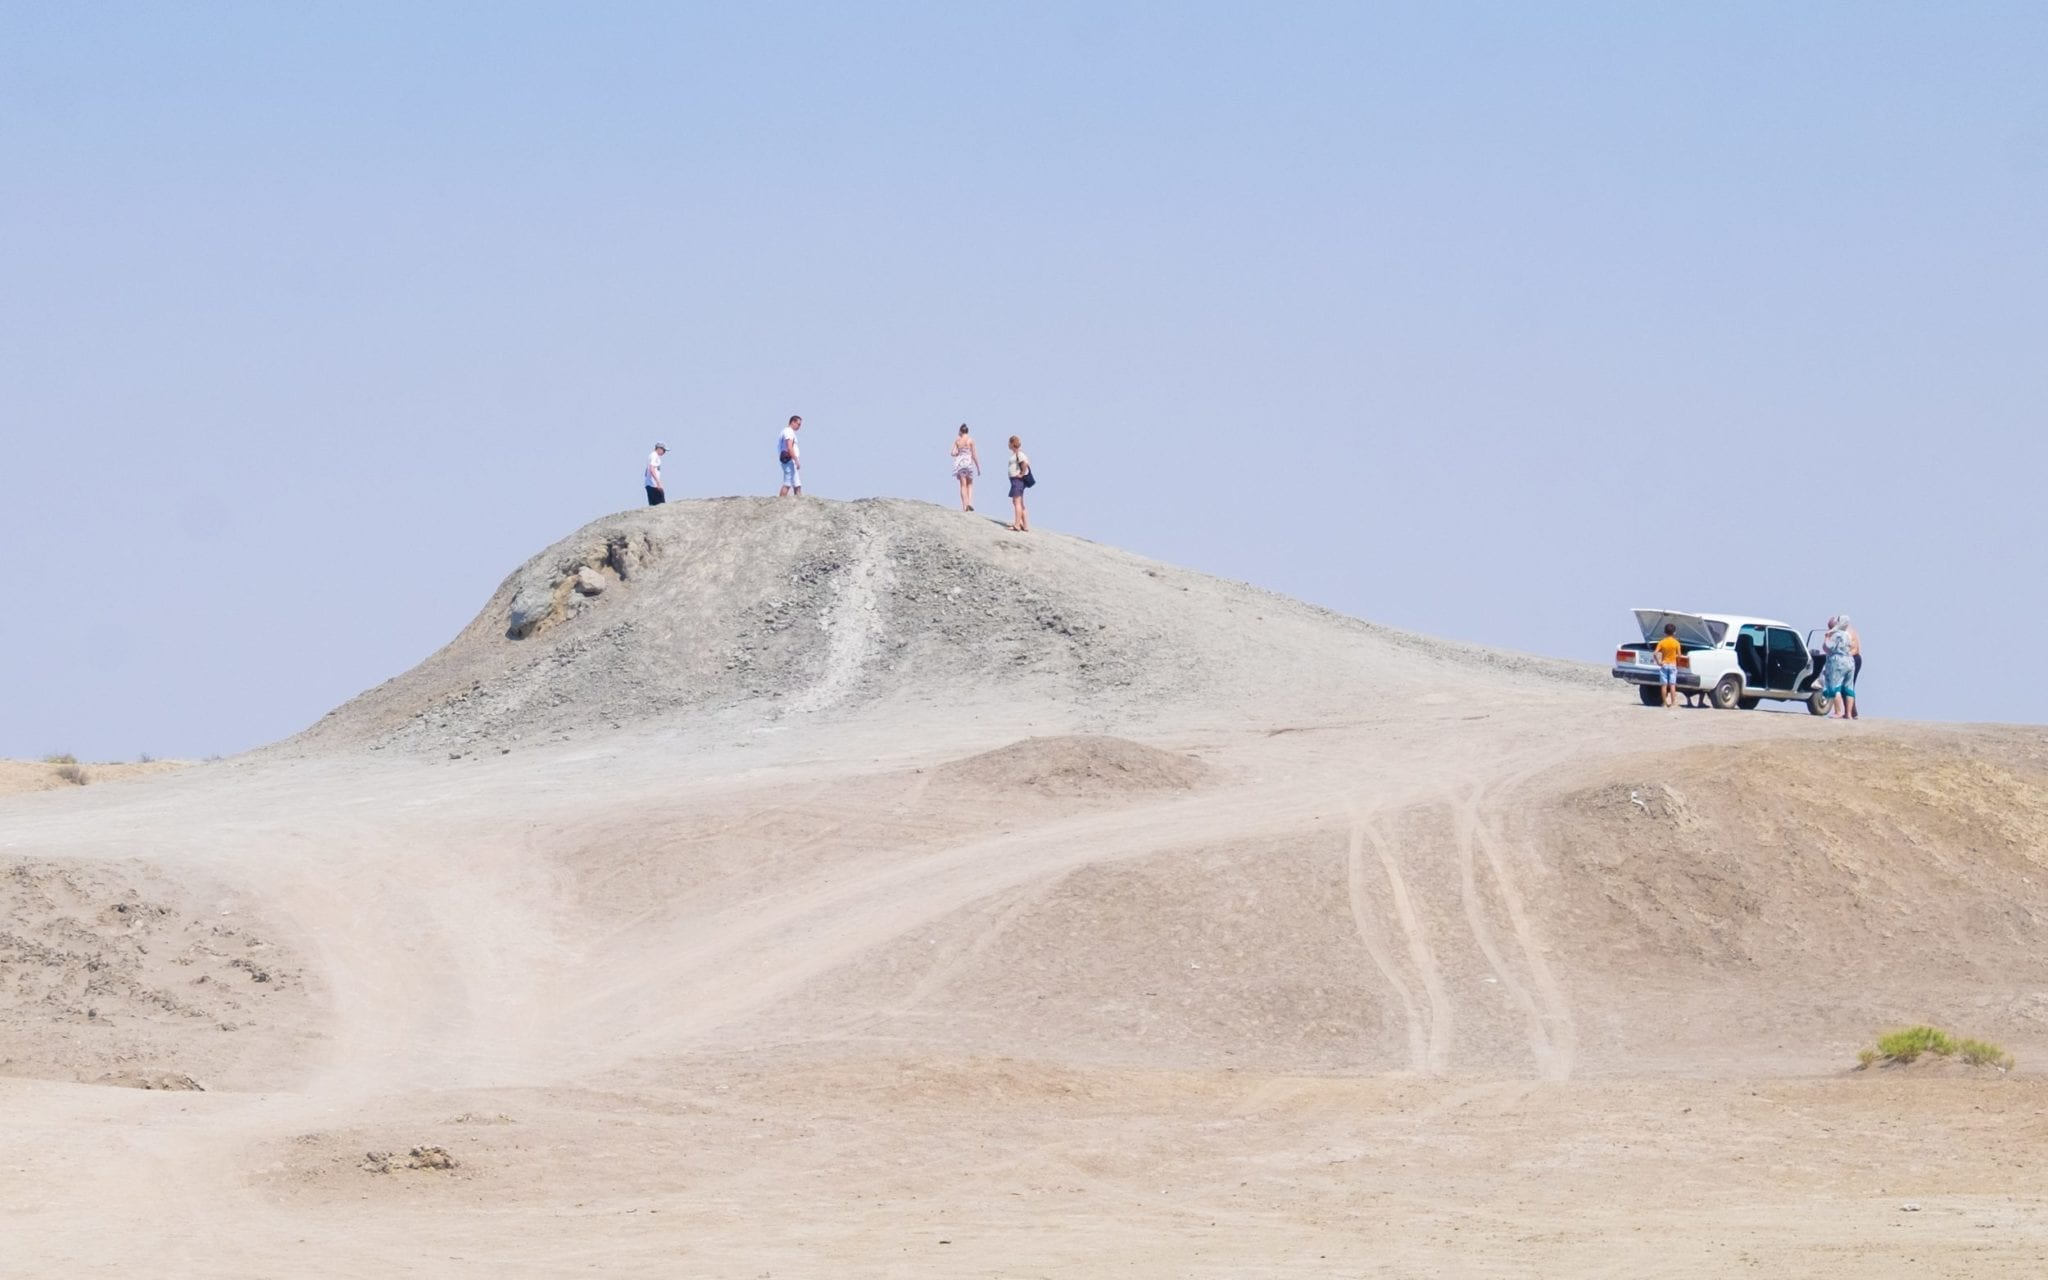 Four tiny people standing atop a mud volcano in the desert, making it look enormous.